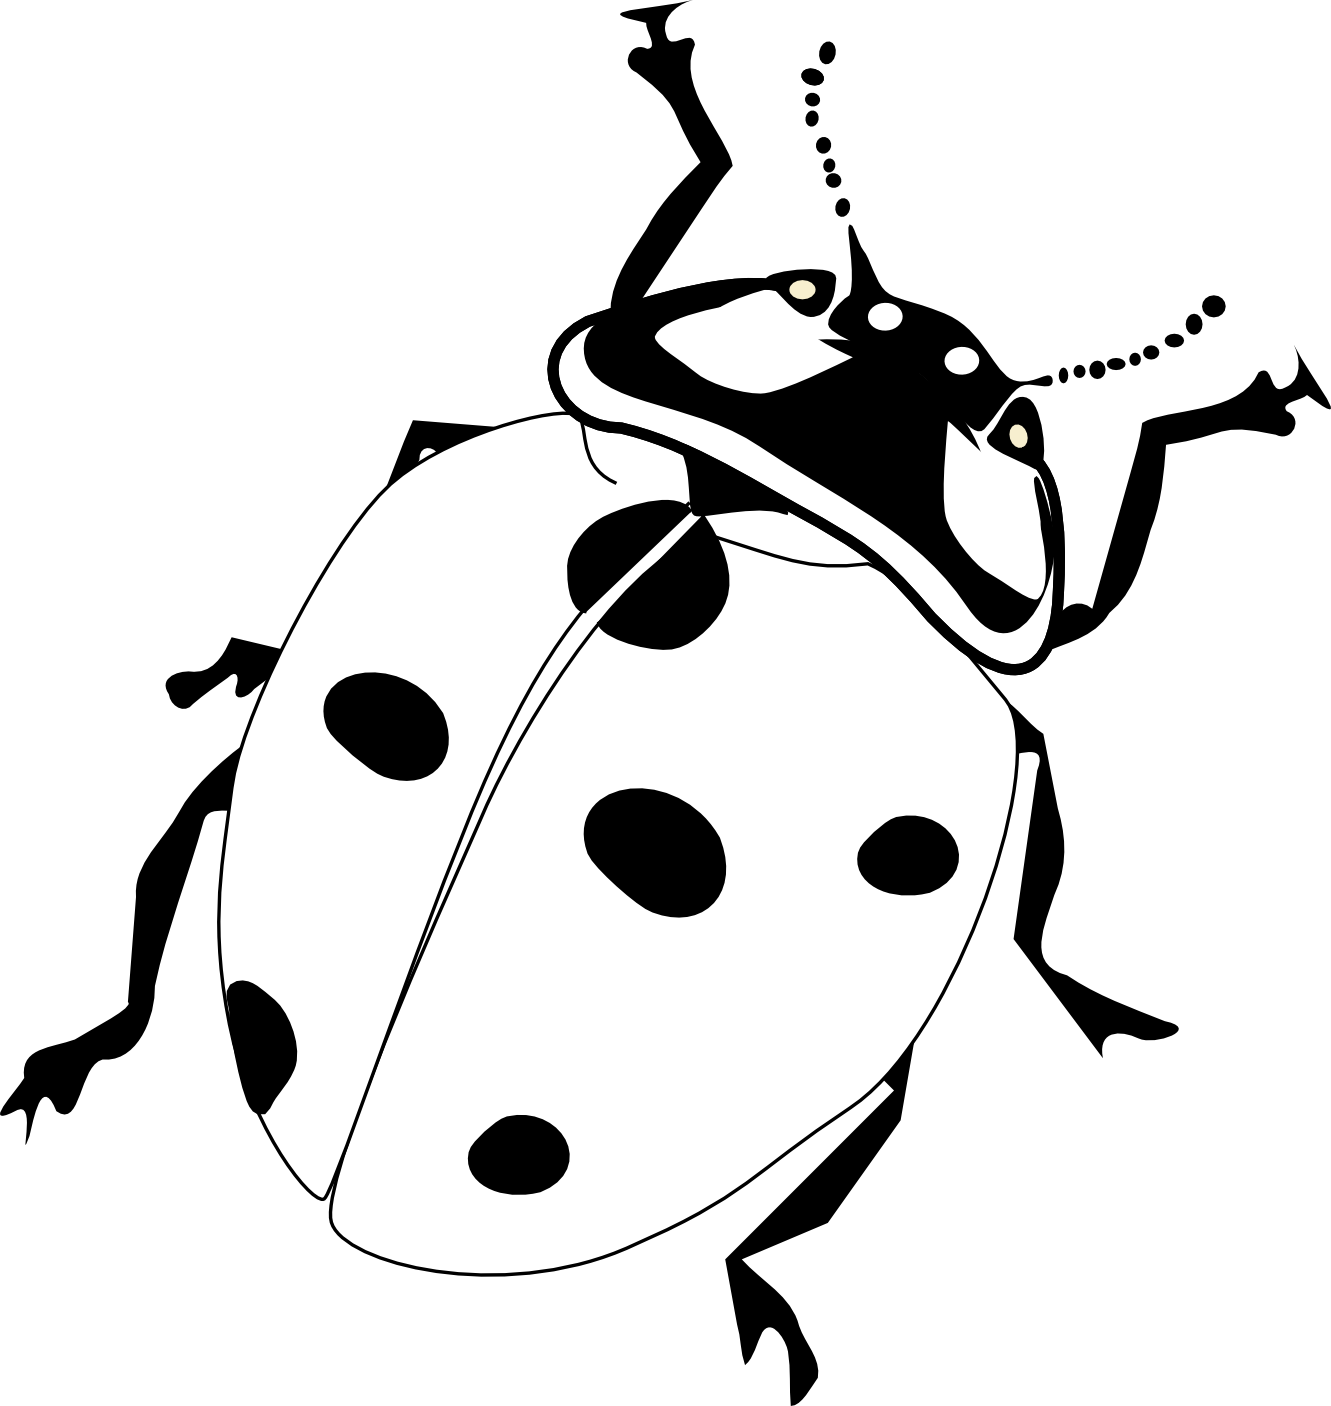 Ladybug clipart sketch. Bug black and white